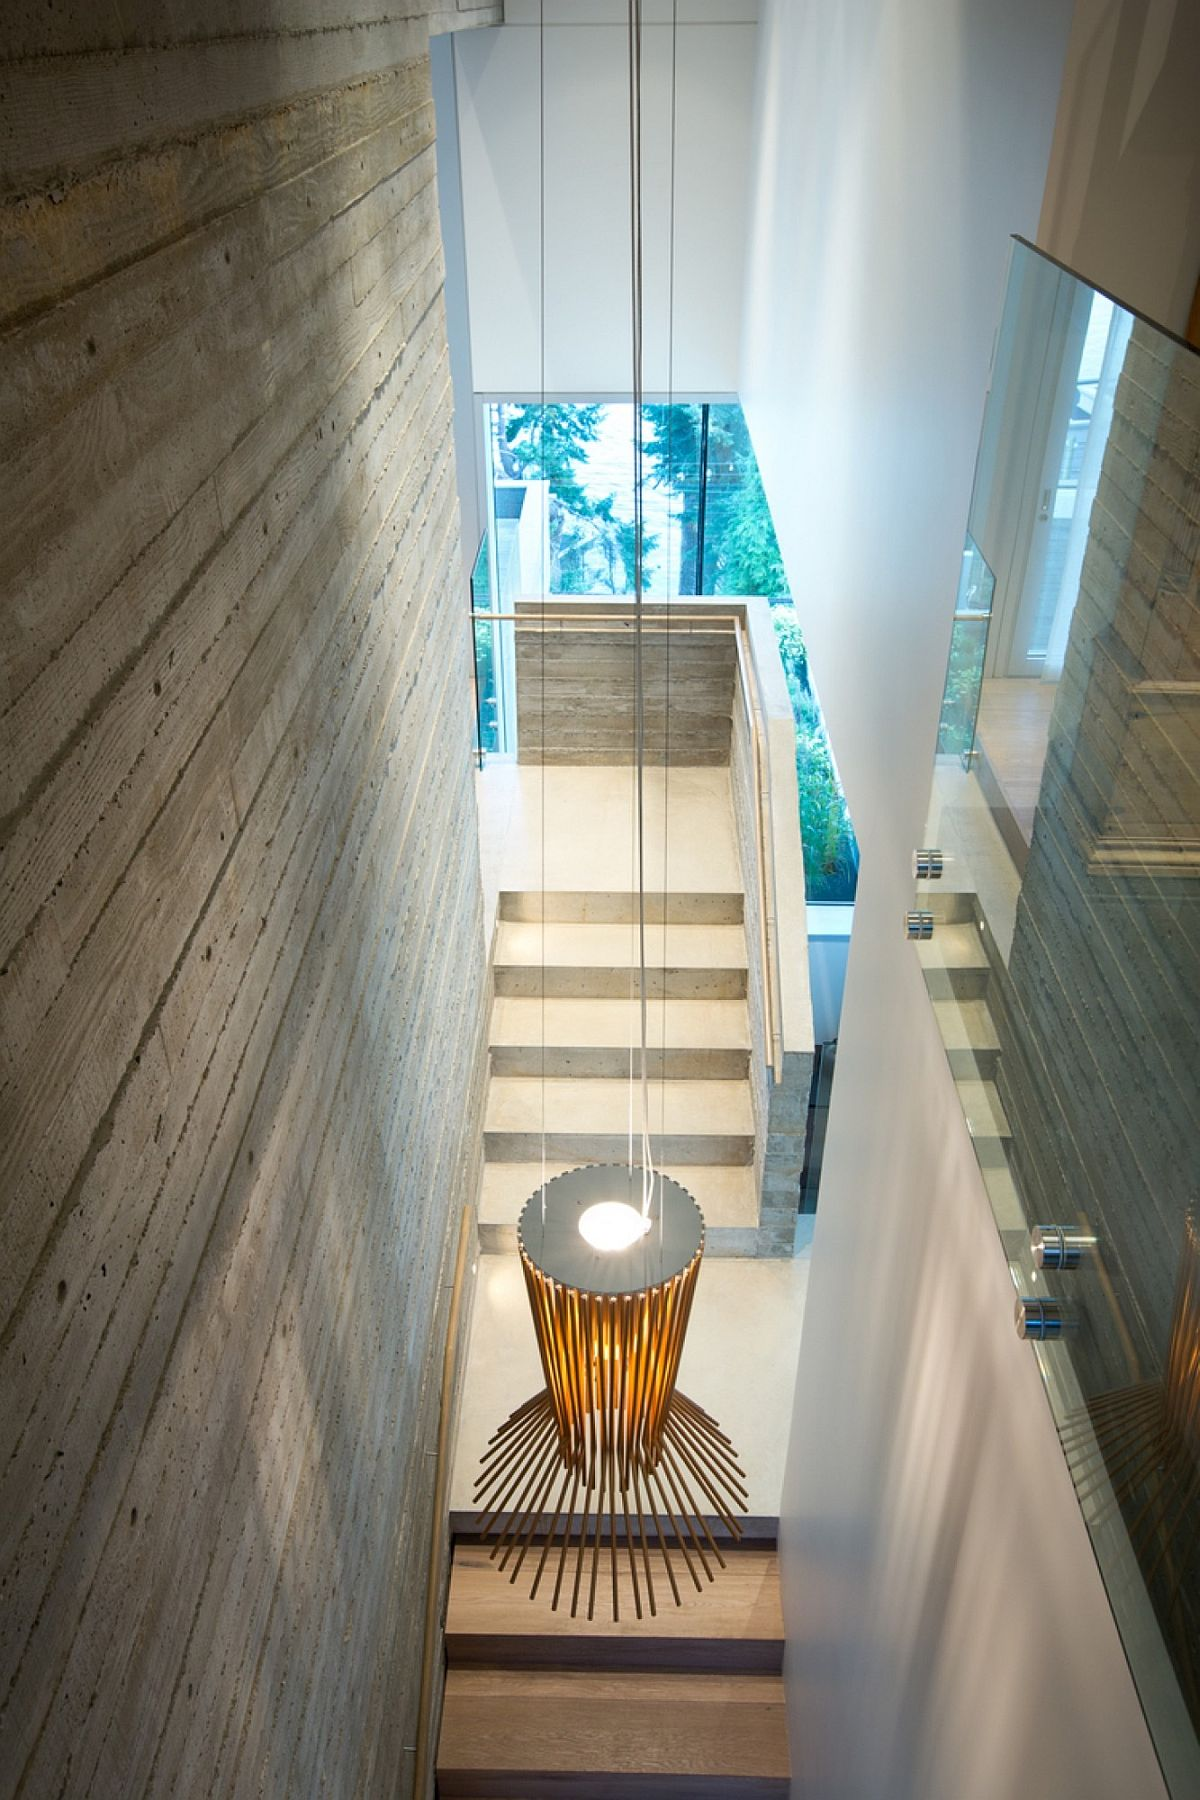 Pendant light used to illuminate the stairway in style